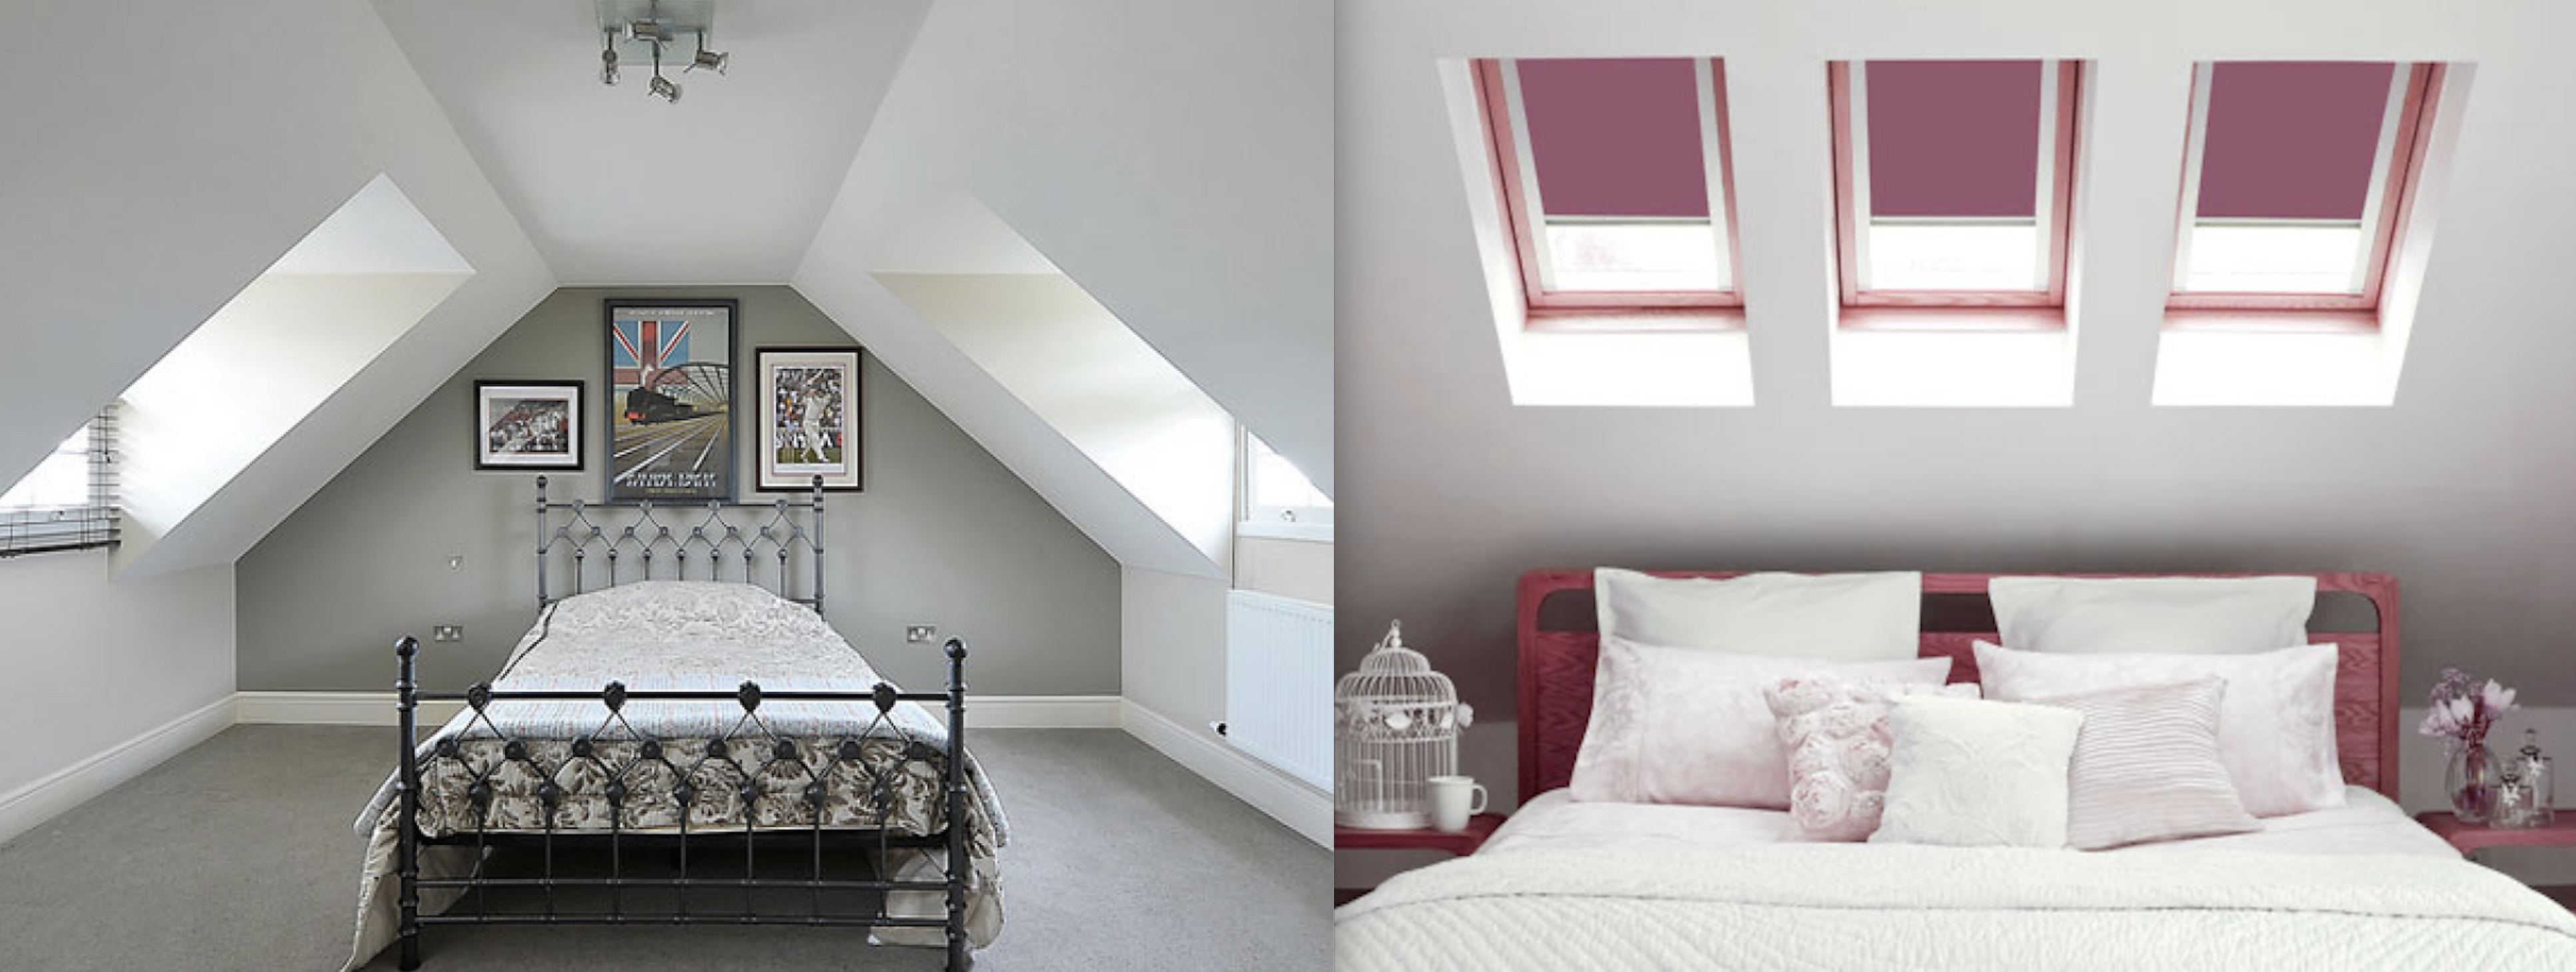 Dormer and Velux loft conversions in Harwood creating stunning and spacious master bedroom with private bathroom.